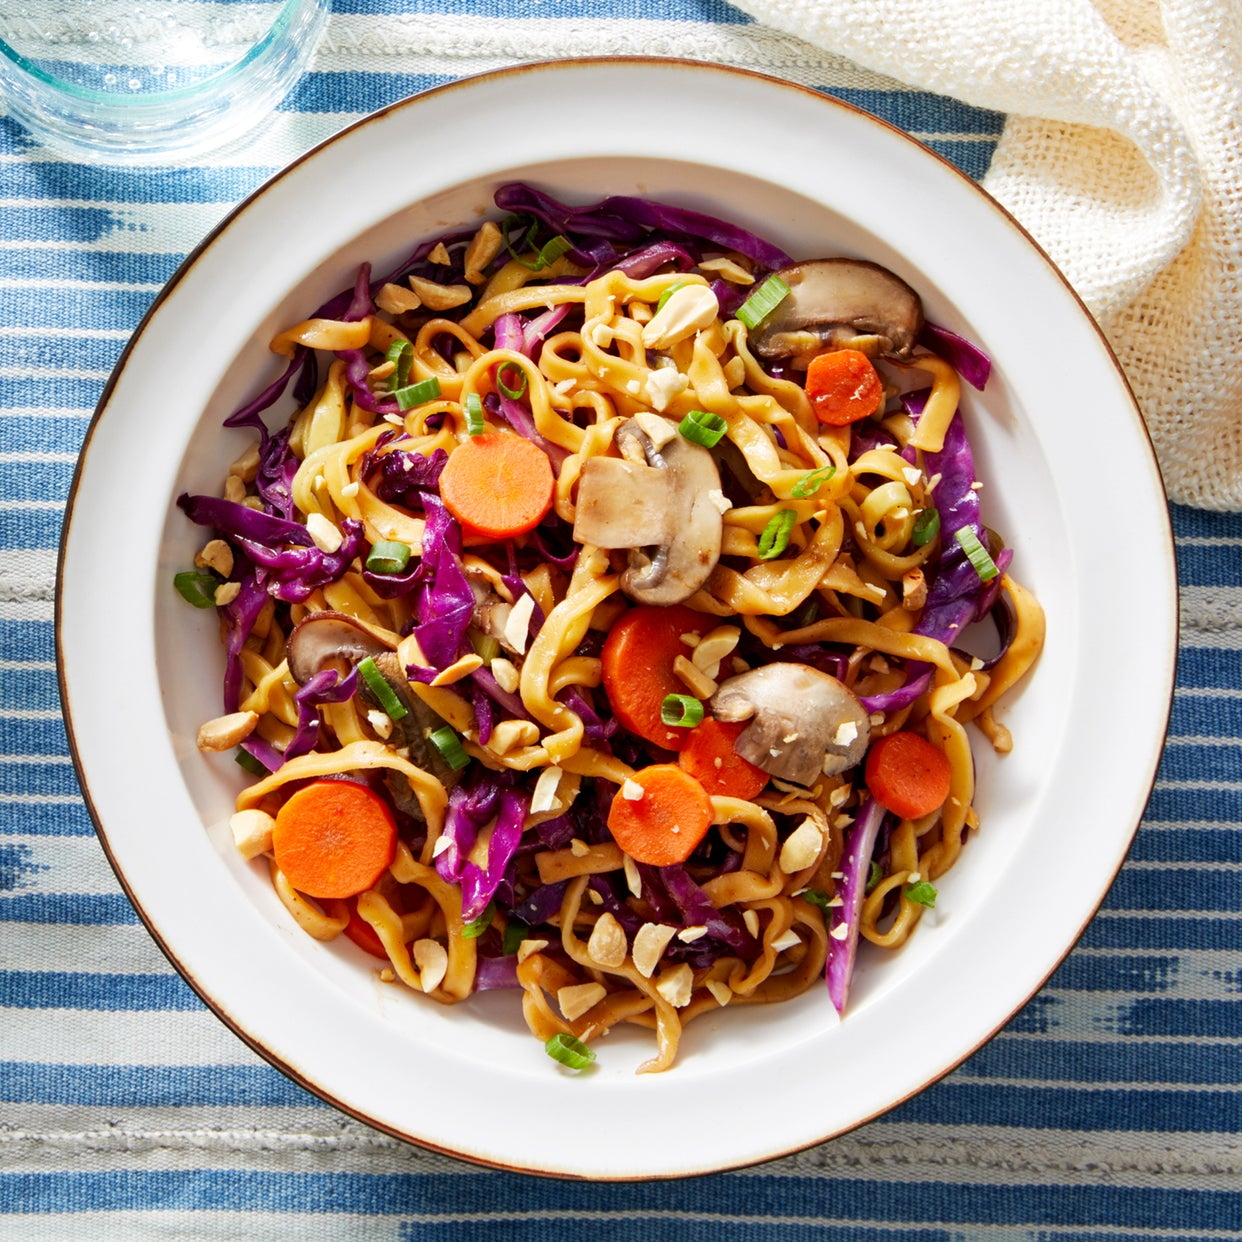 Cumin-Spiced Wonton Noodles with Vegetables & Peanuts